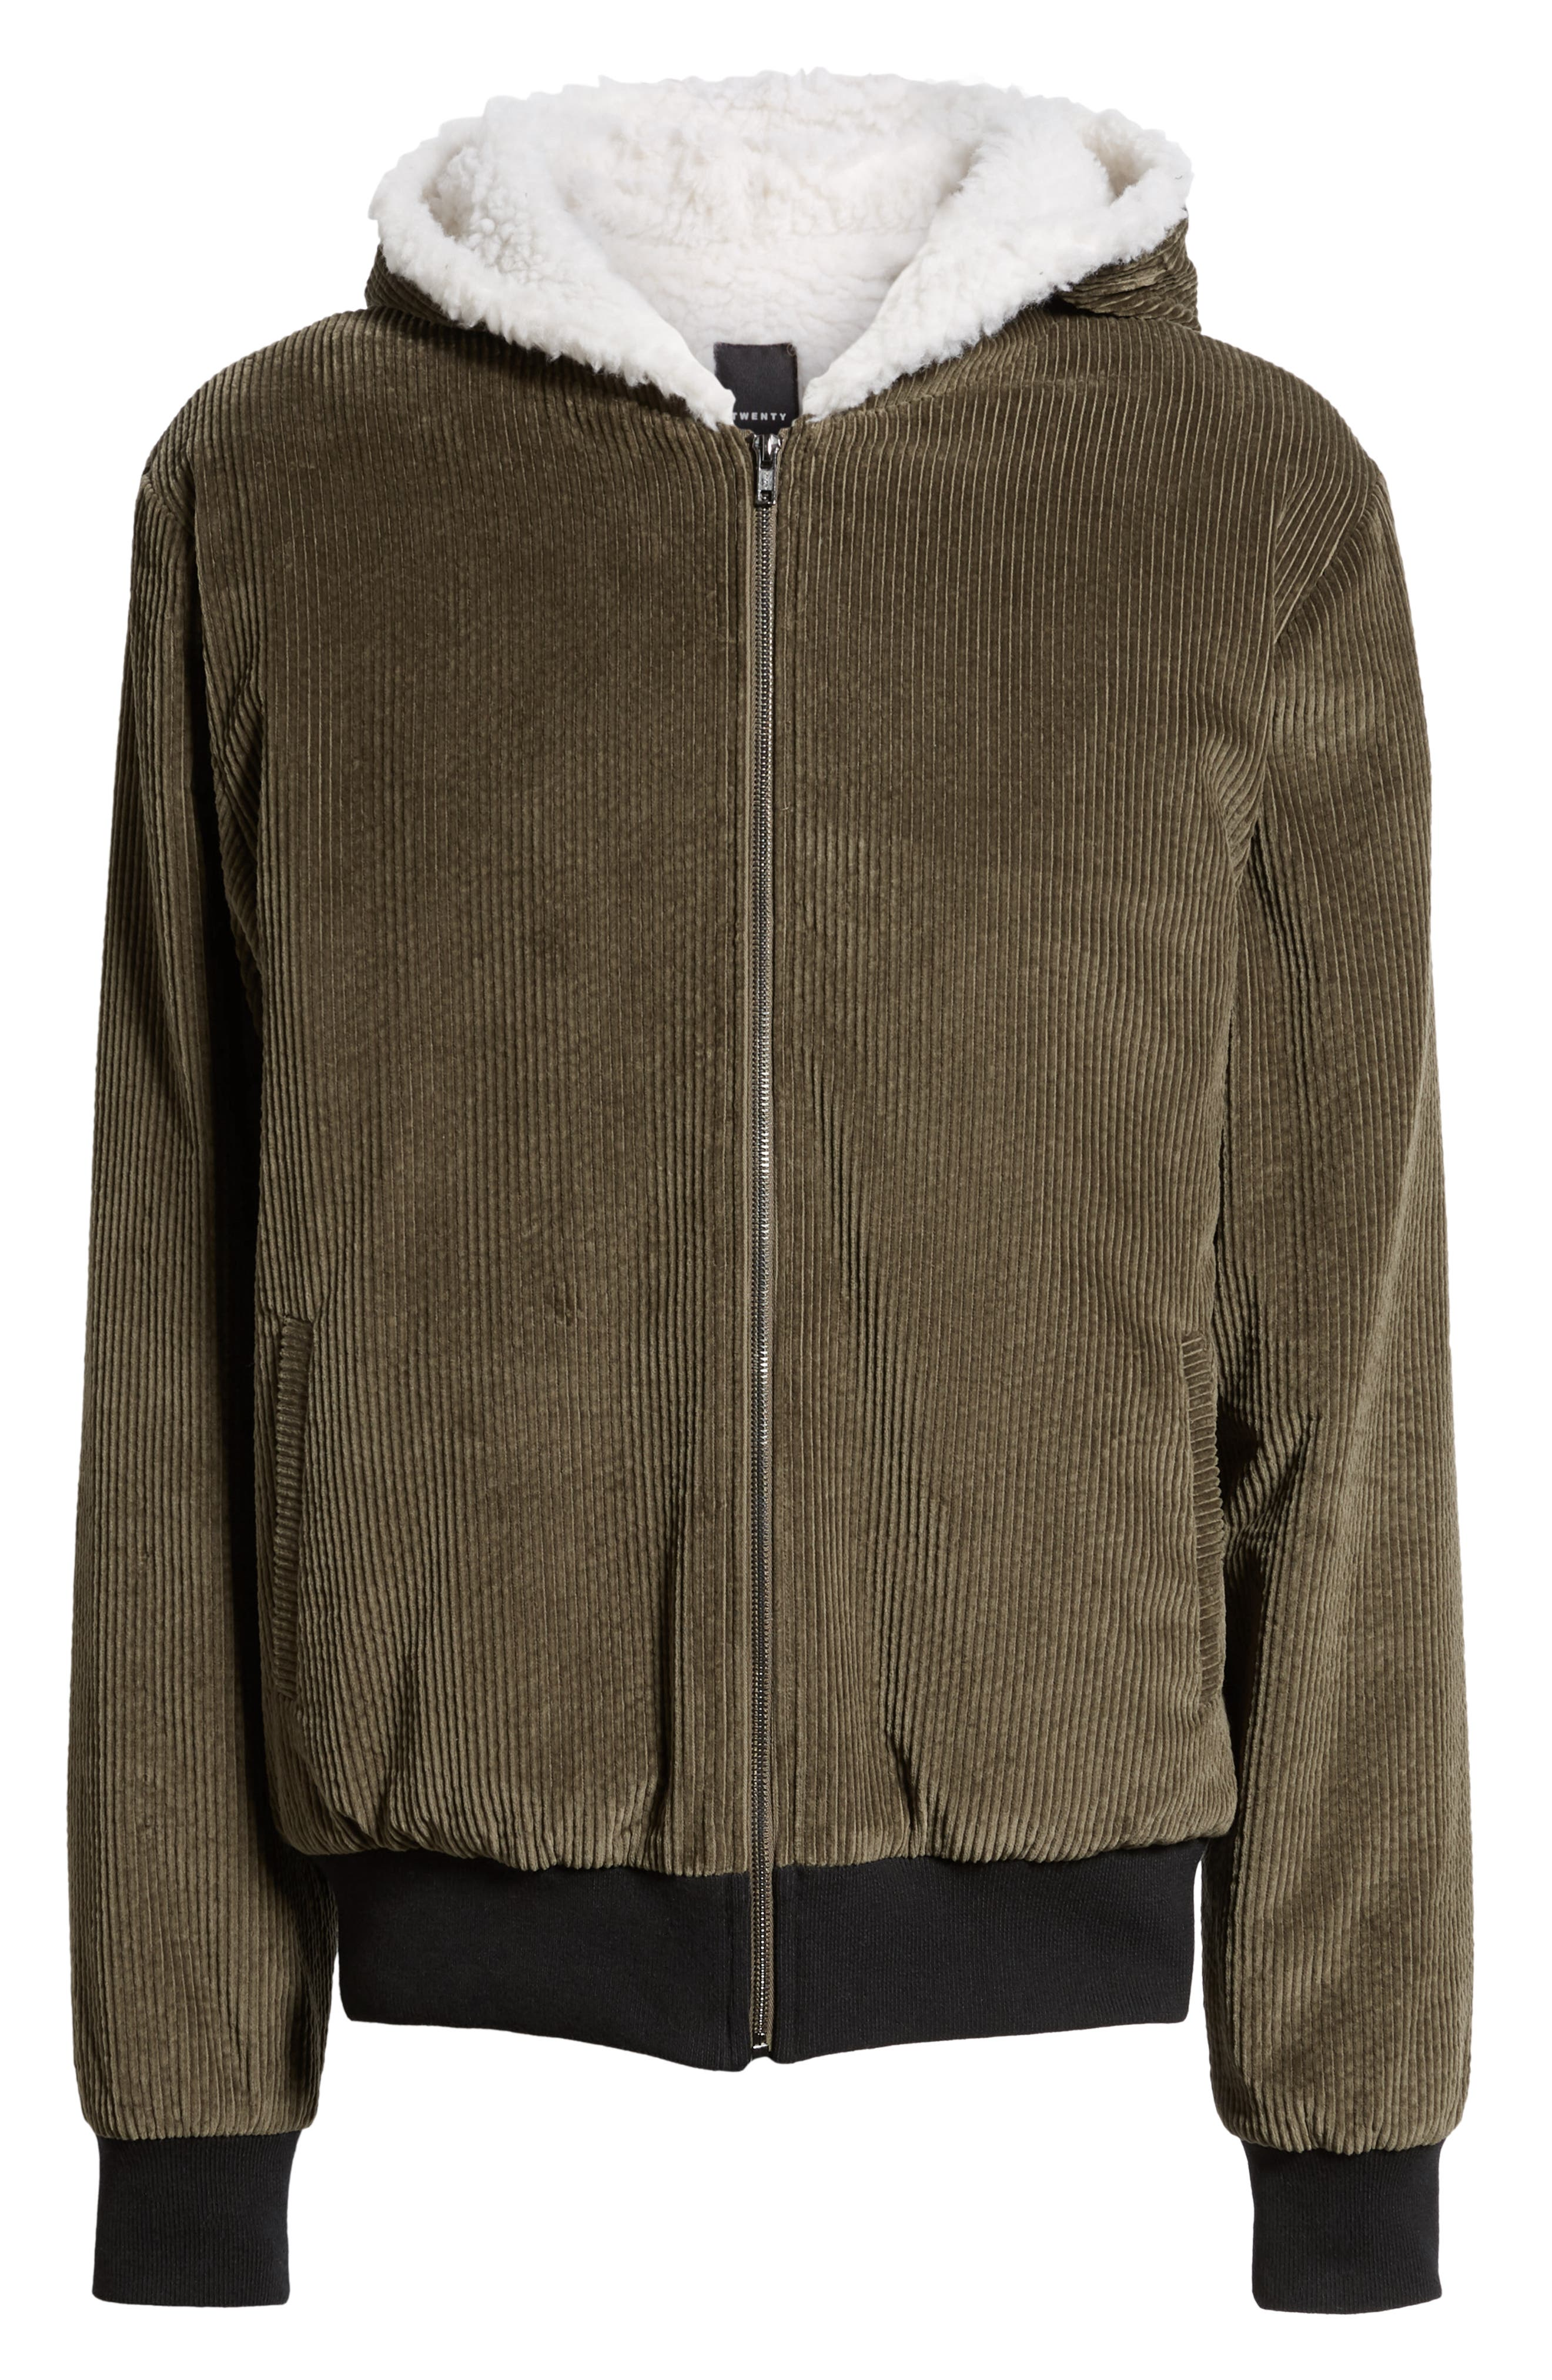 Champlain Cotton Corduroy & Faux Shearling Hooded Bomber Jacket,                             Alternate thumbnail 6, color,                             ARMY